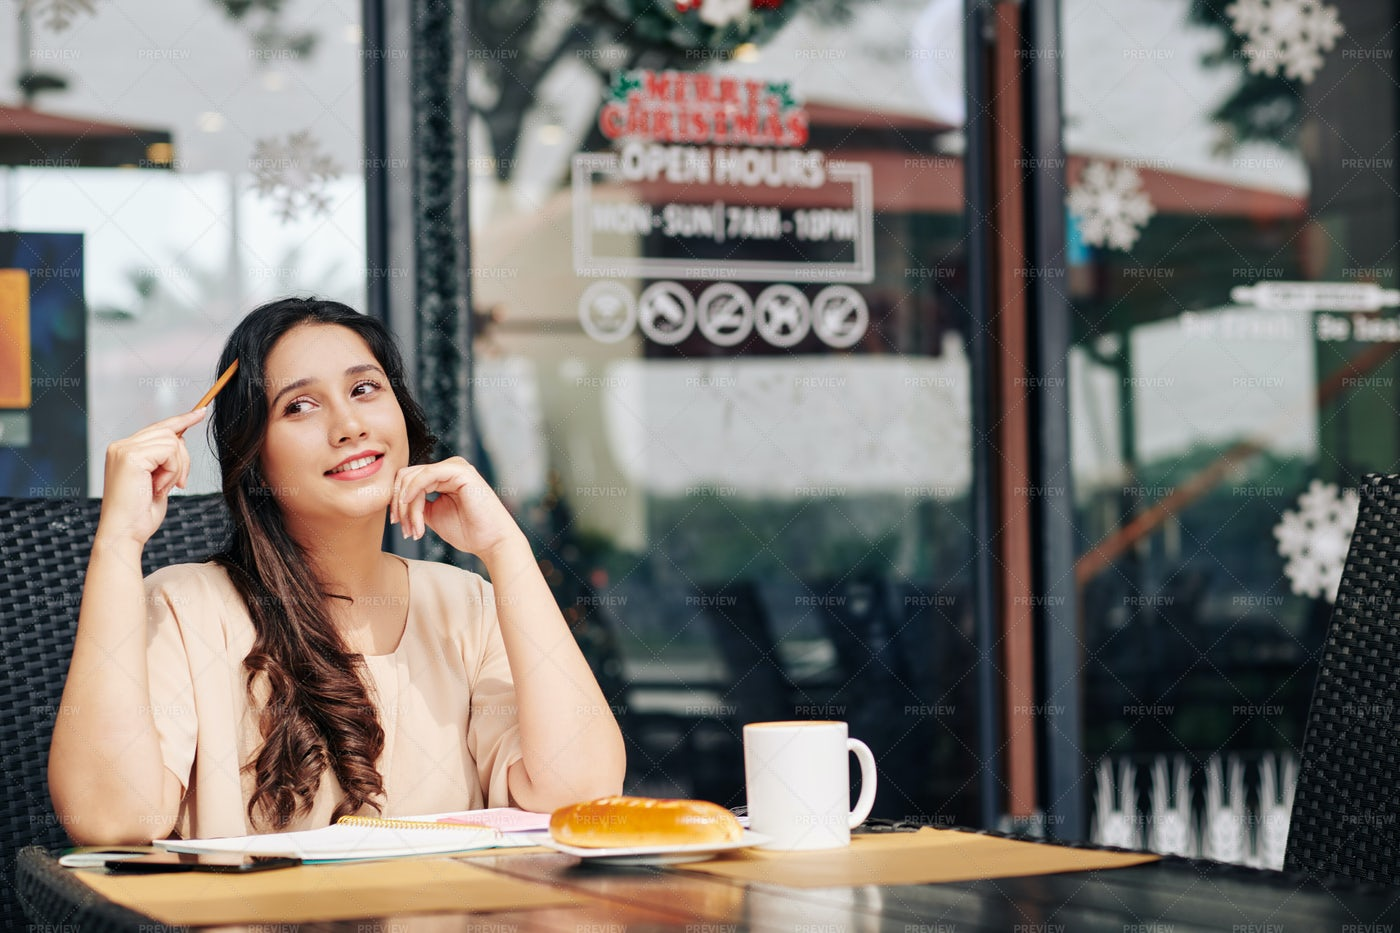 Pensive Student At Cafe Table: Stock Photos